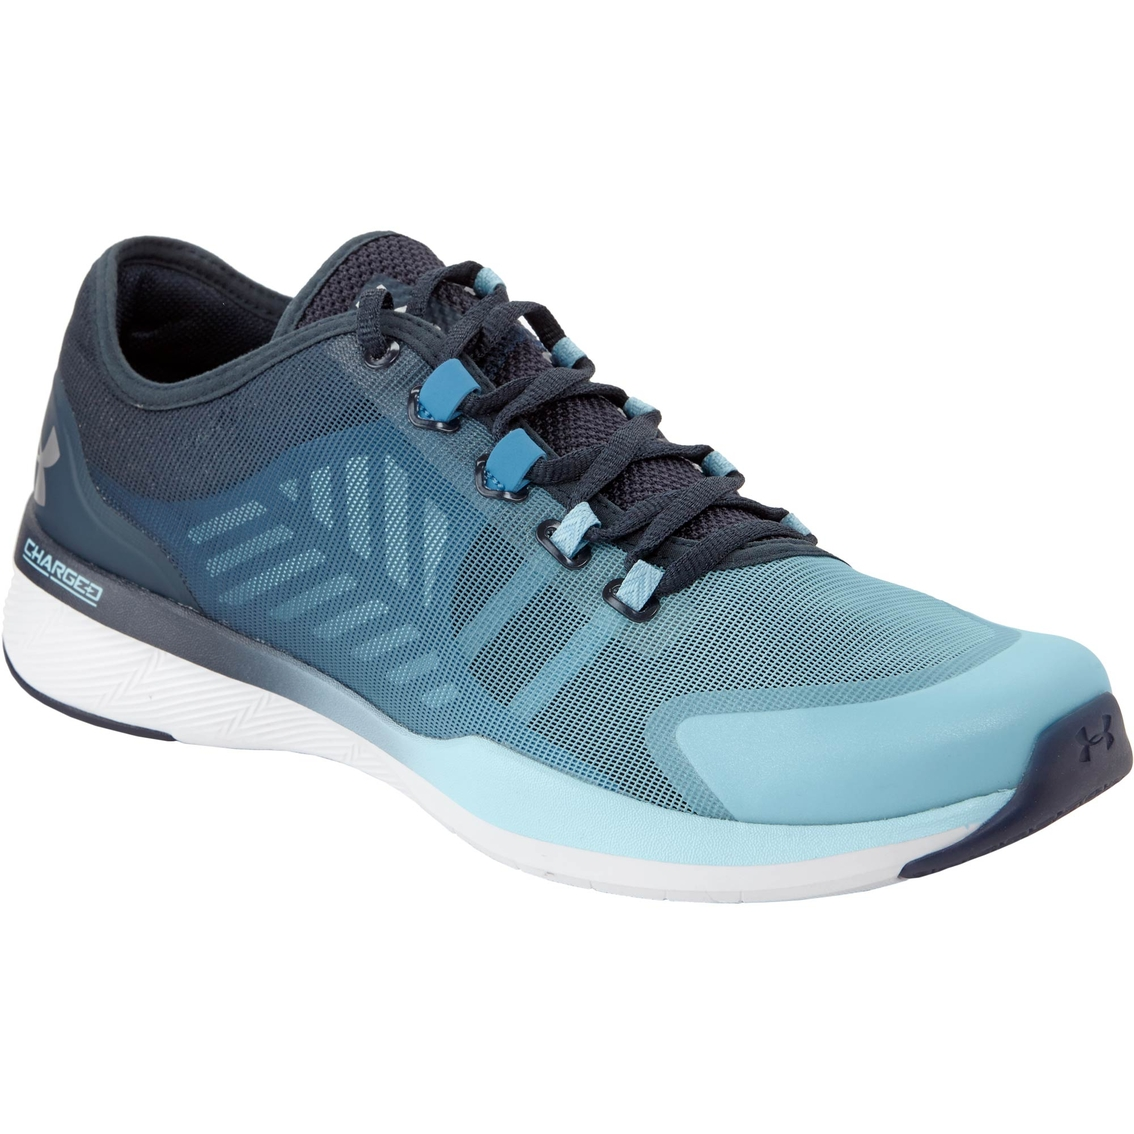 Under Armour Women's Charged Push Tr Seg Training Shoes | Cross Training | Shoes | Shop The Exchange